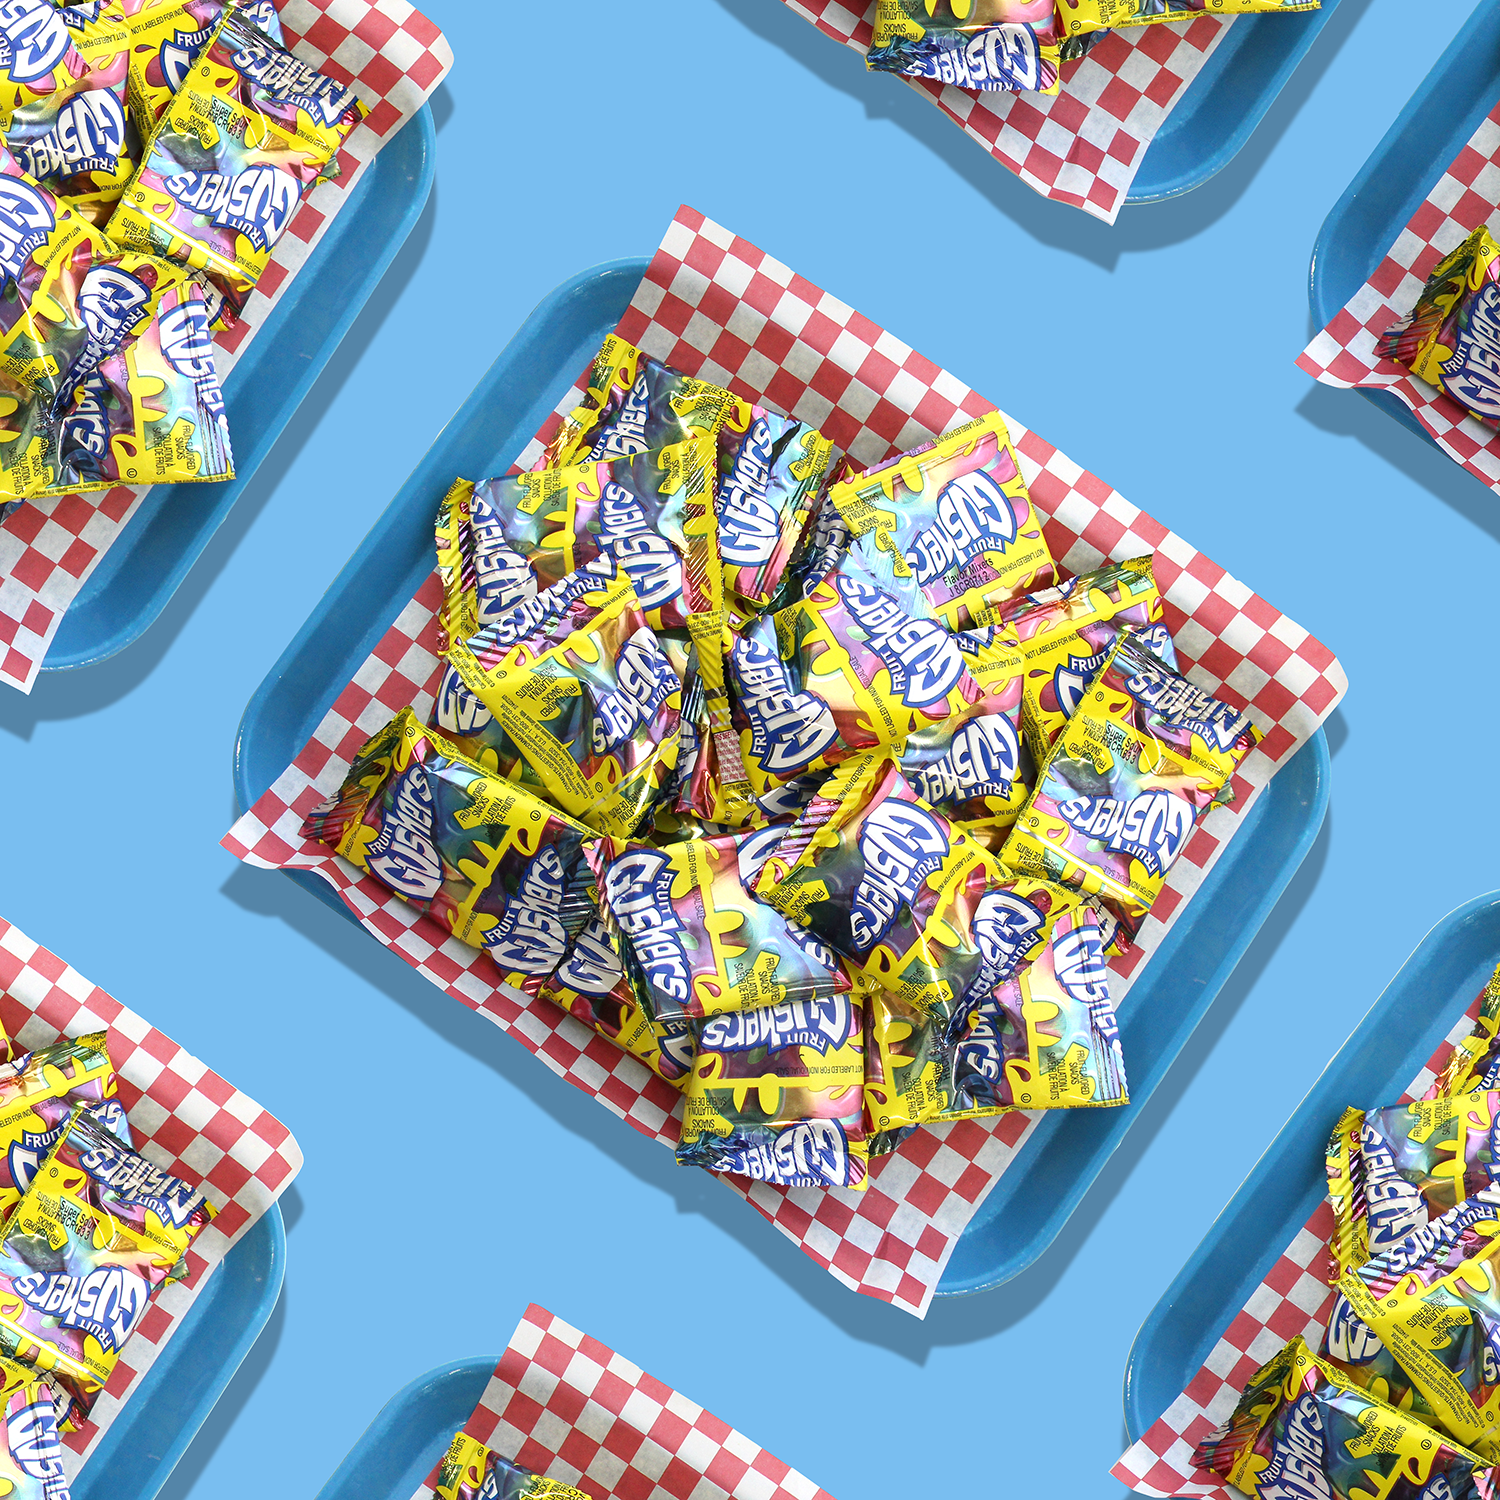 gushers_tray_wallpaper2 copy.png